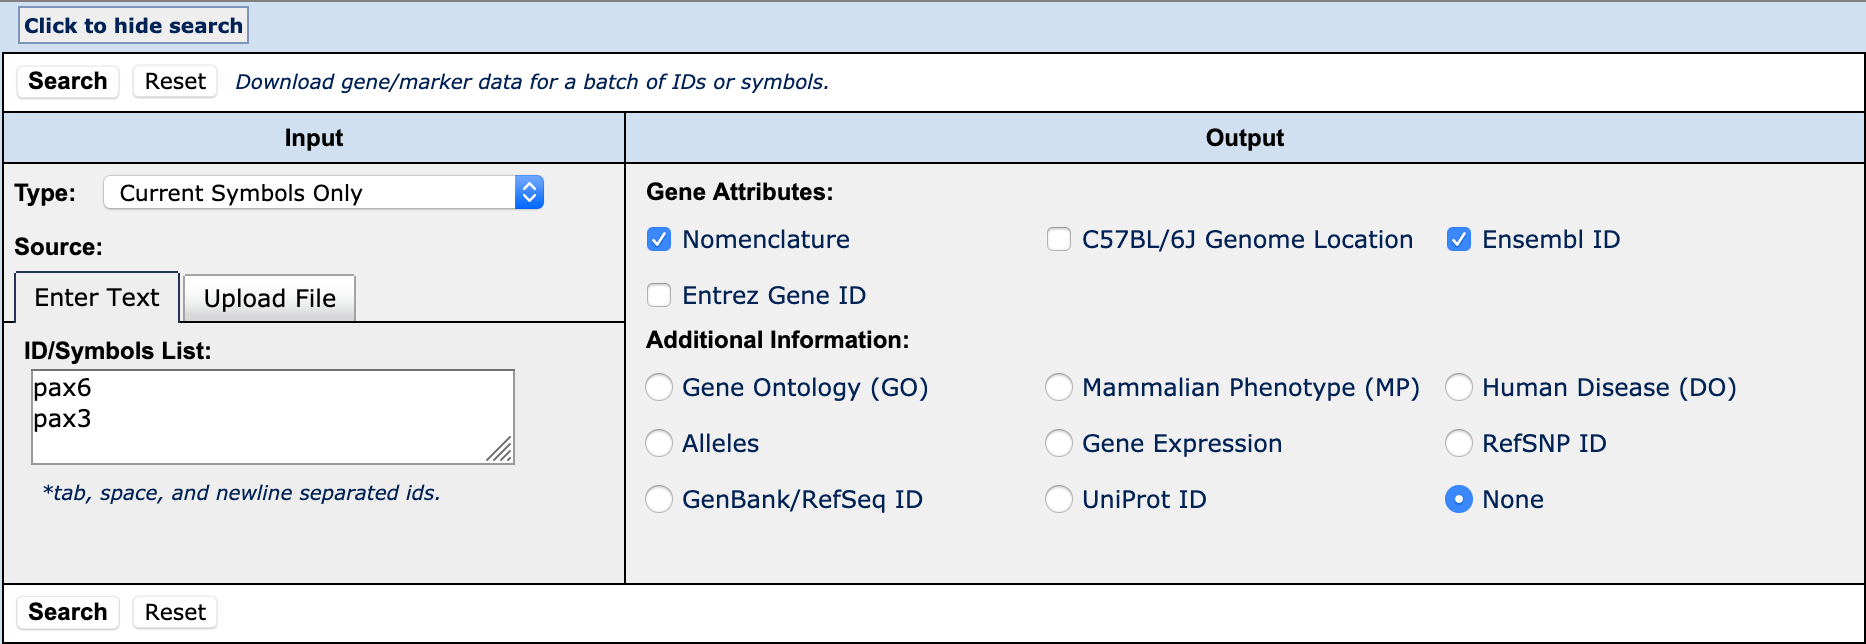 Mgi 612 Find Accession Ids For A List Of Genes